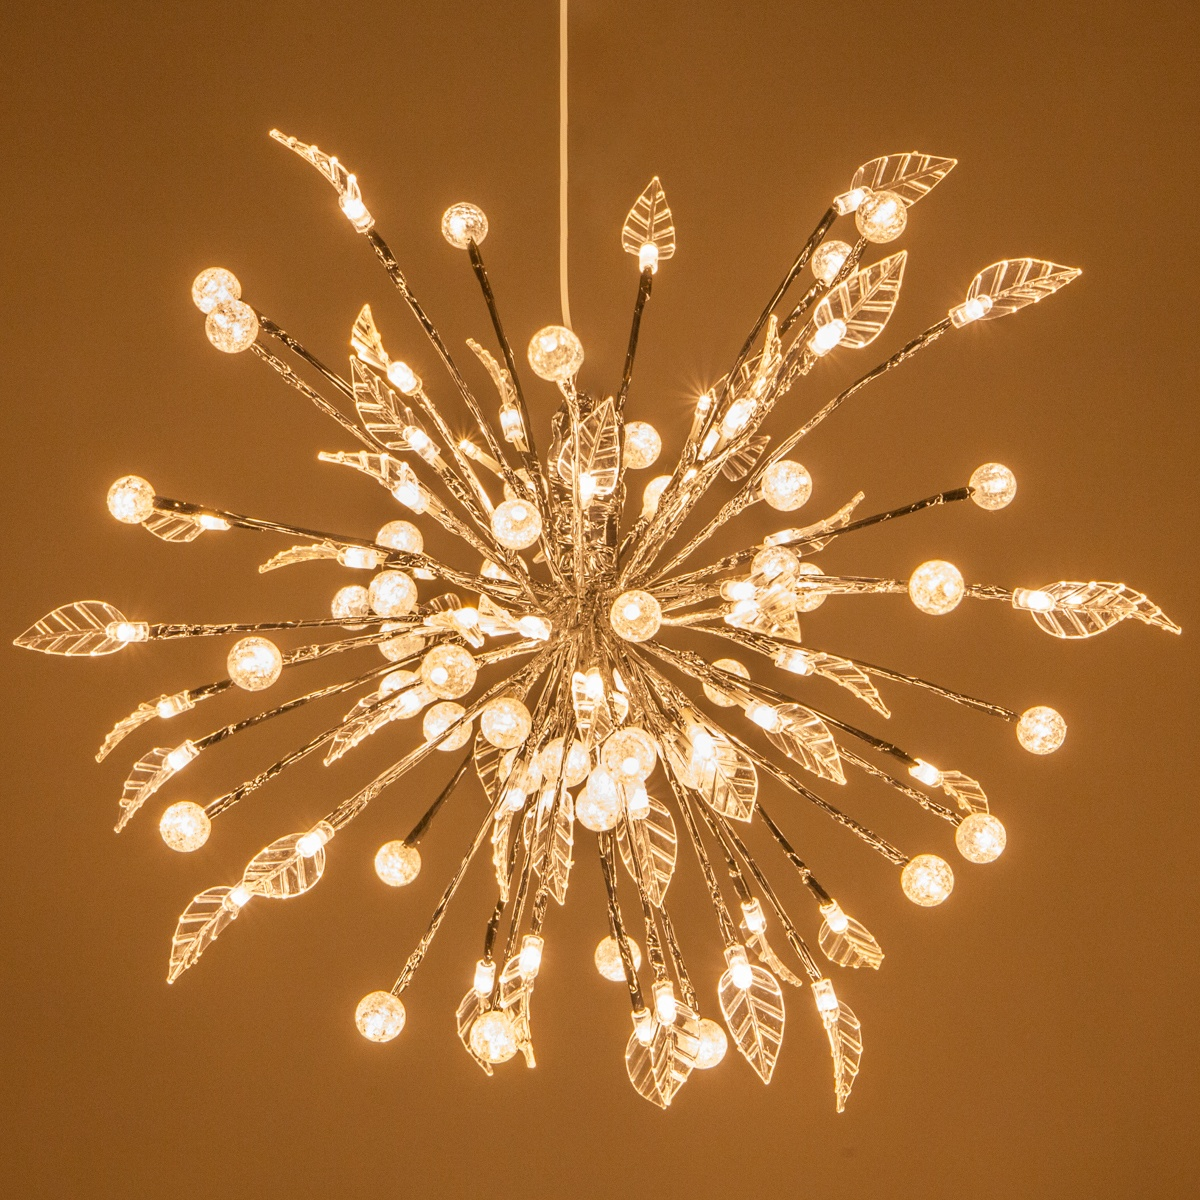 Silver Starburst Lighted Branches With Warm White LED